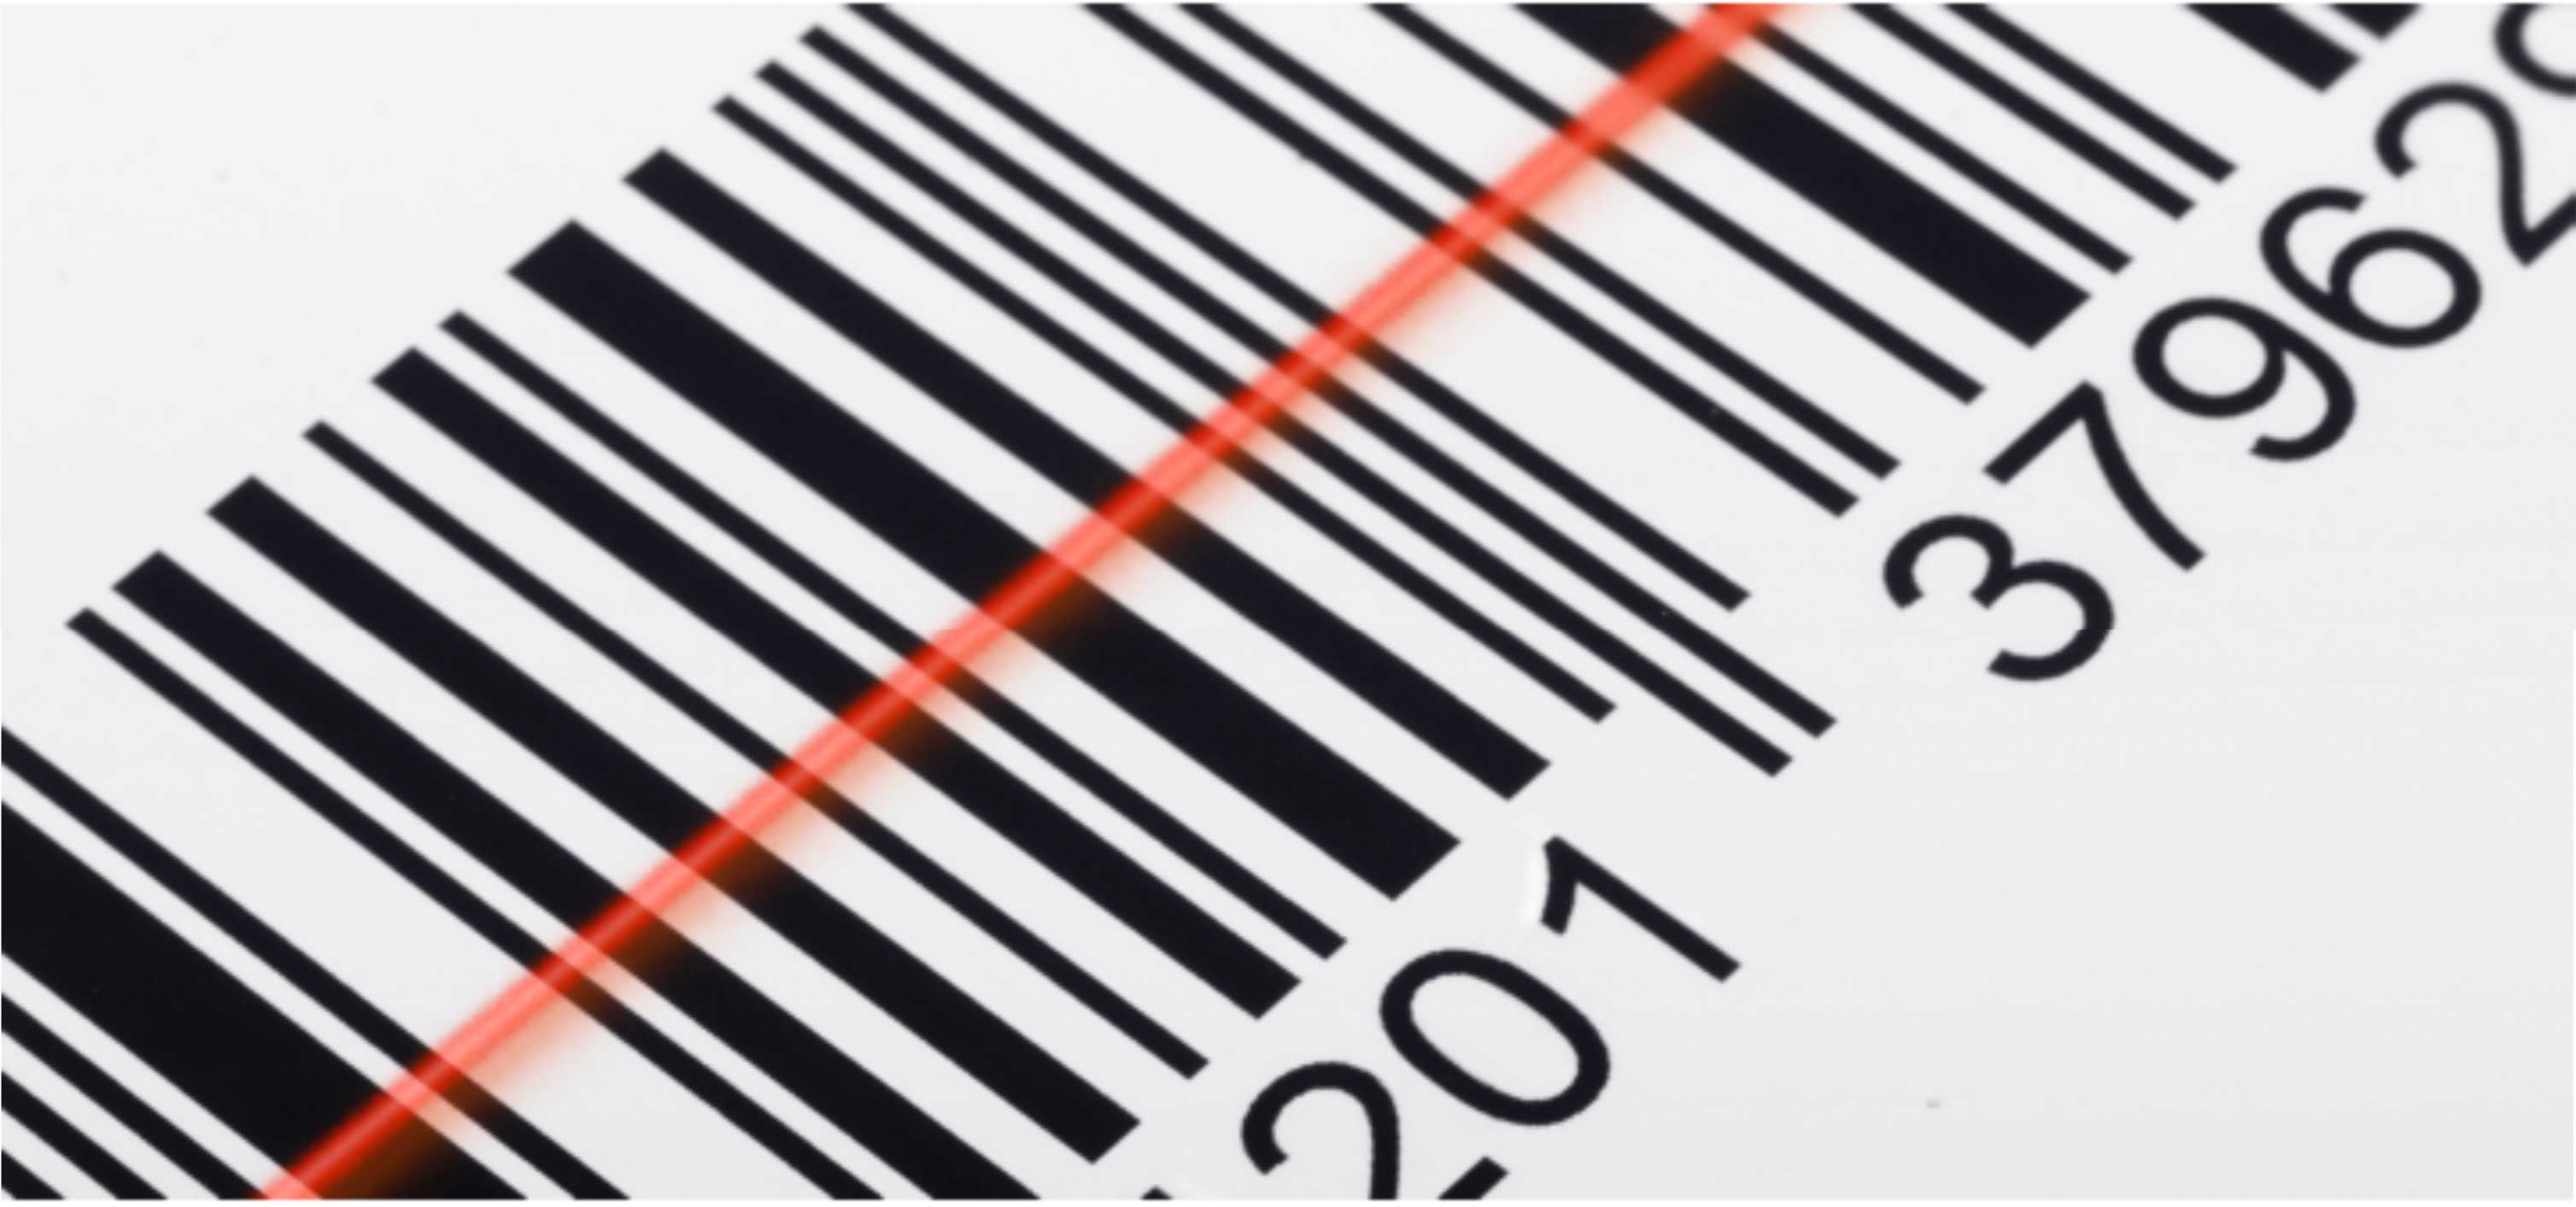 What One Needs To Know About Barcodes